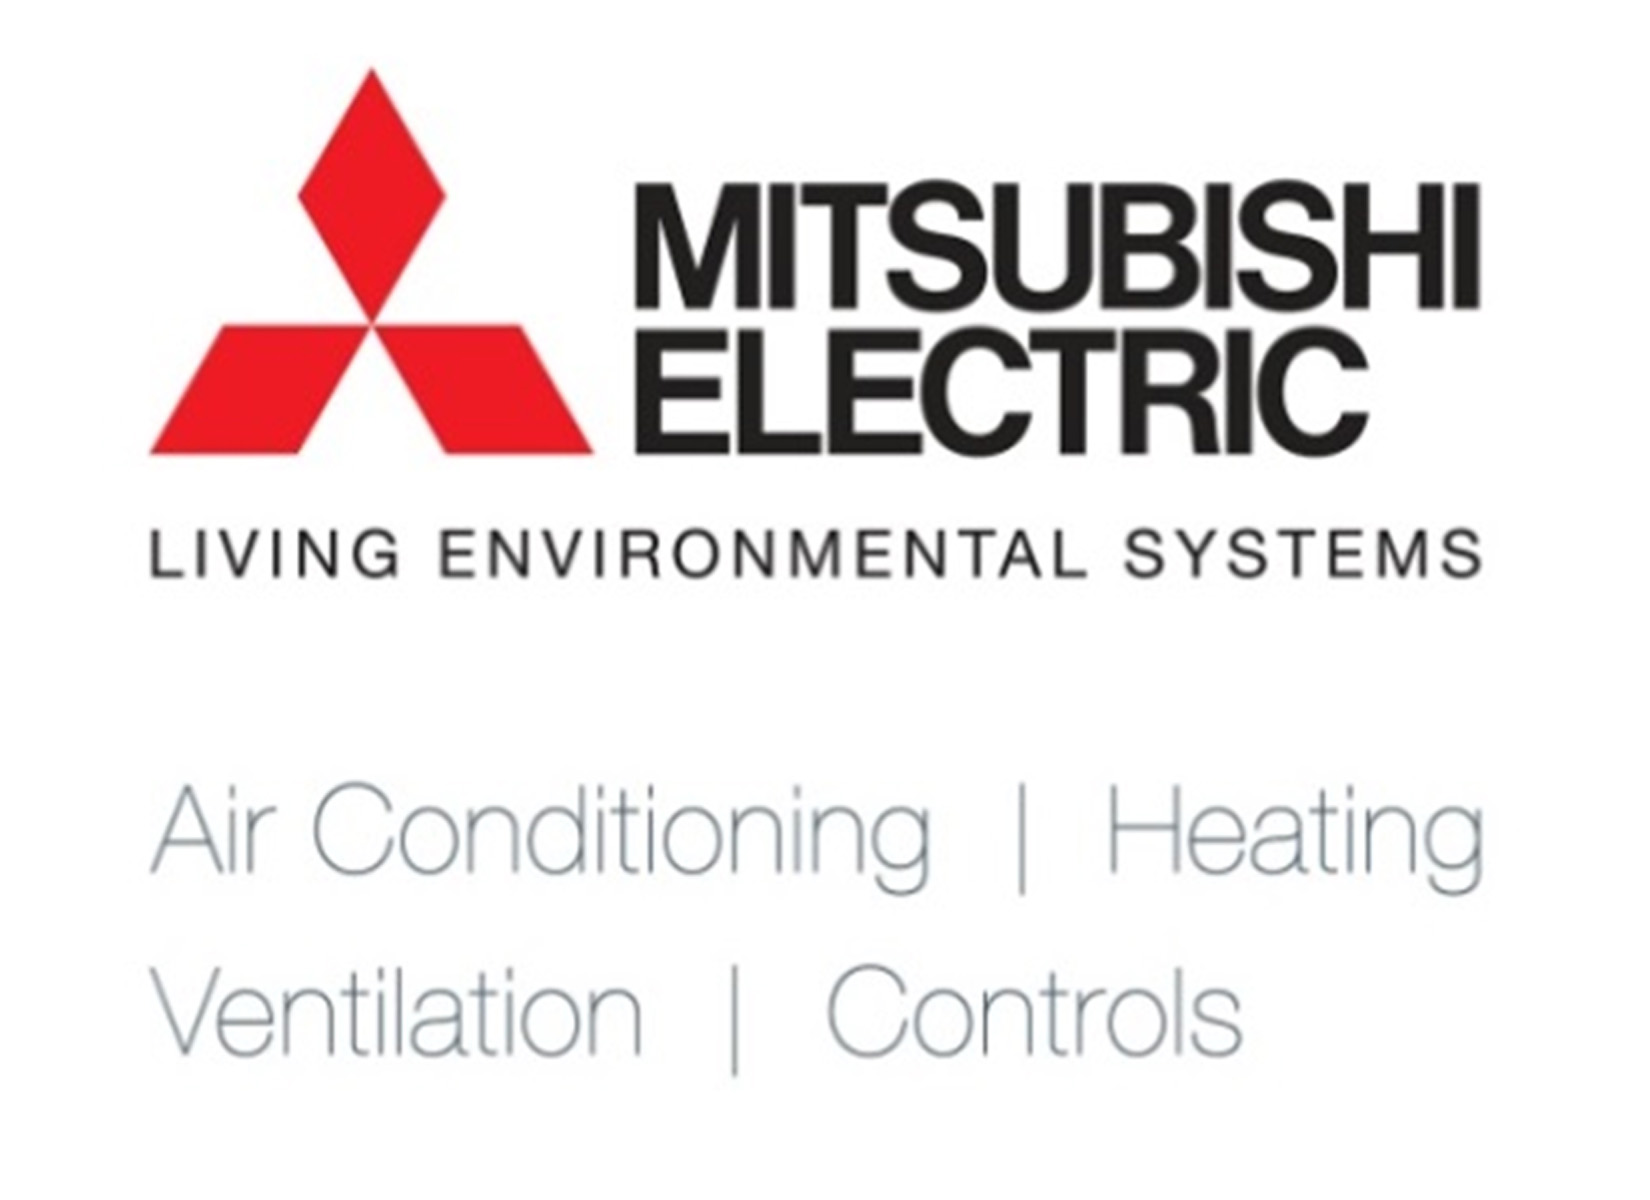 Mitsubishi Electric Living Environmental Systems